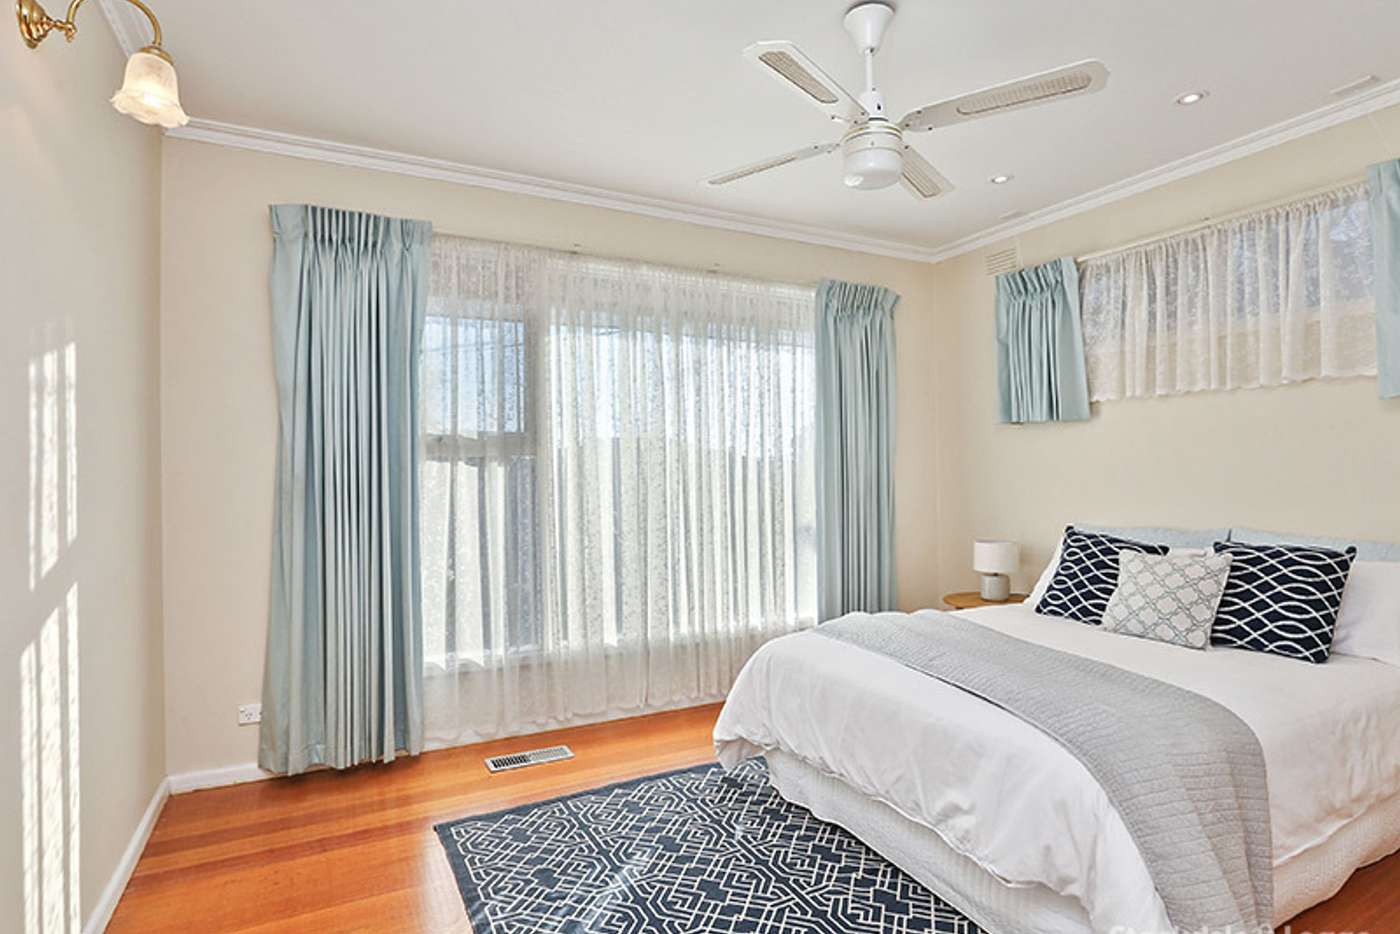 Seventh view of Homely house listing, 7 Konrads Crescent, Highton VIC 3216